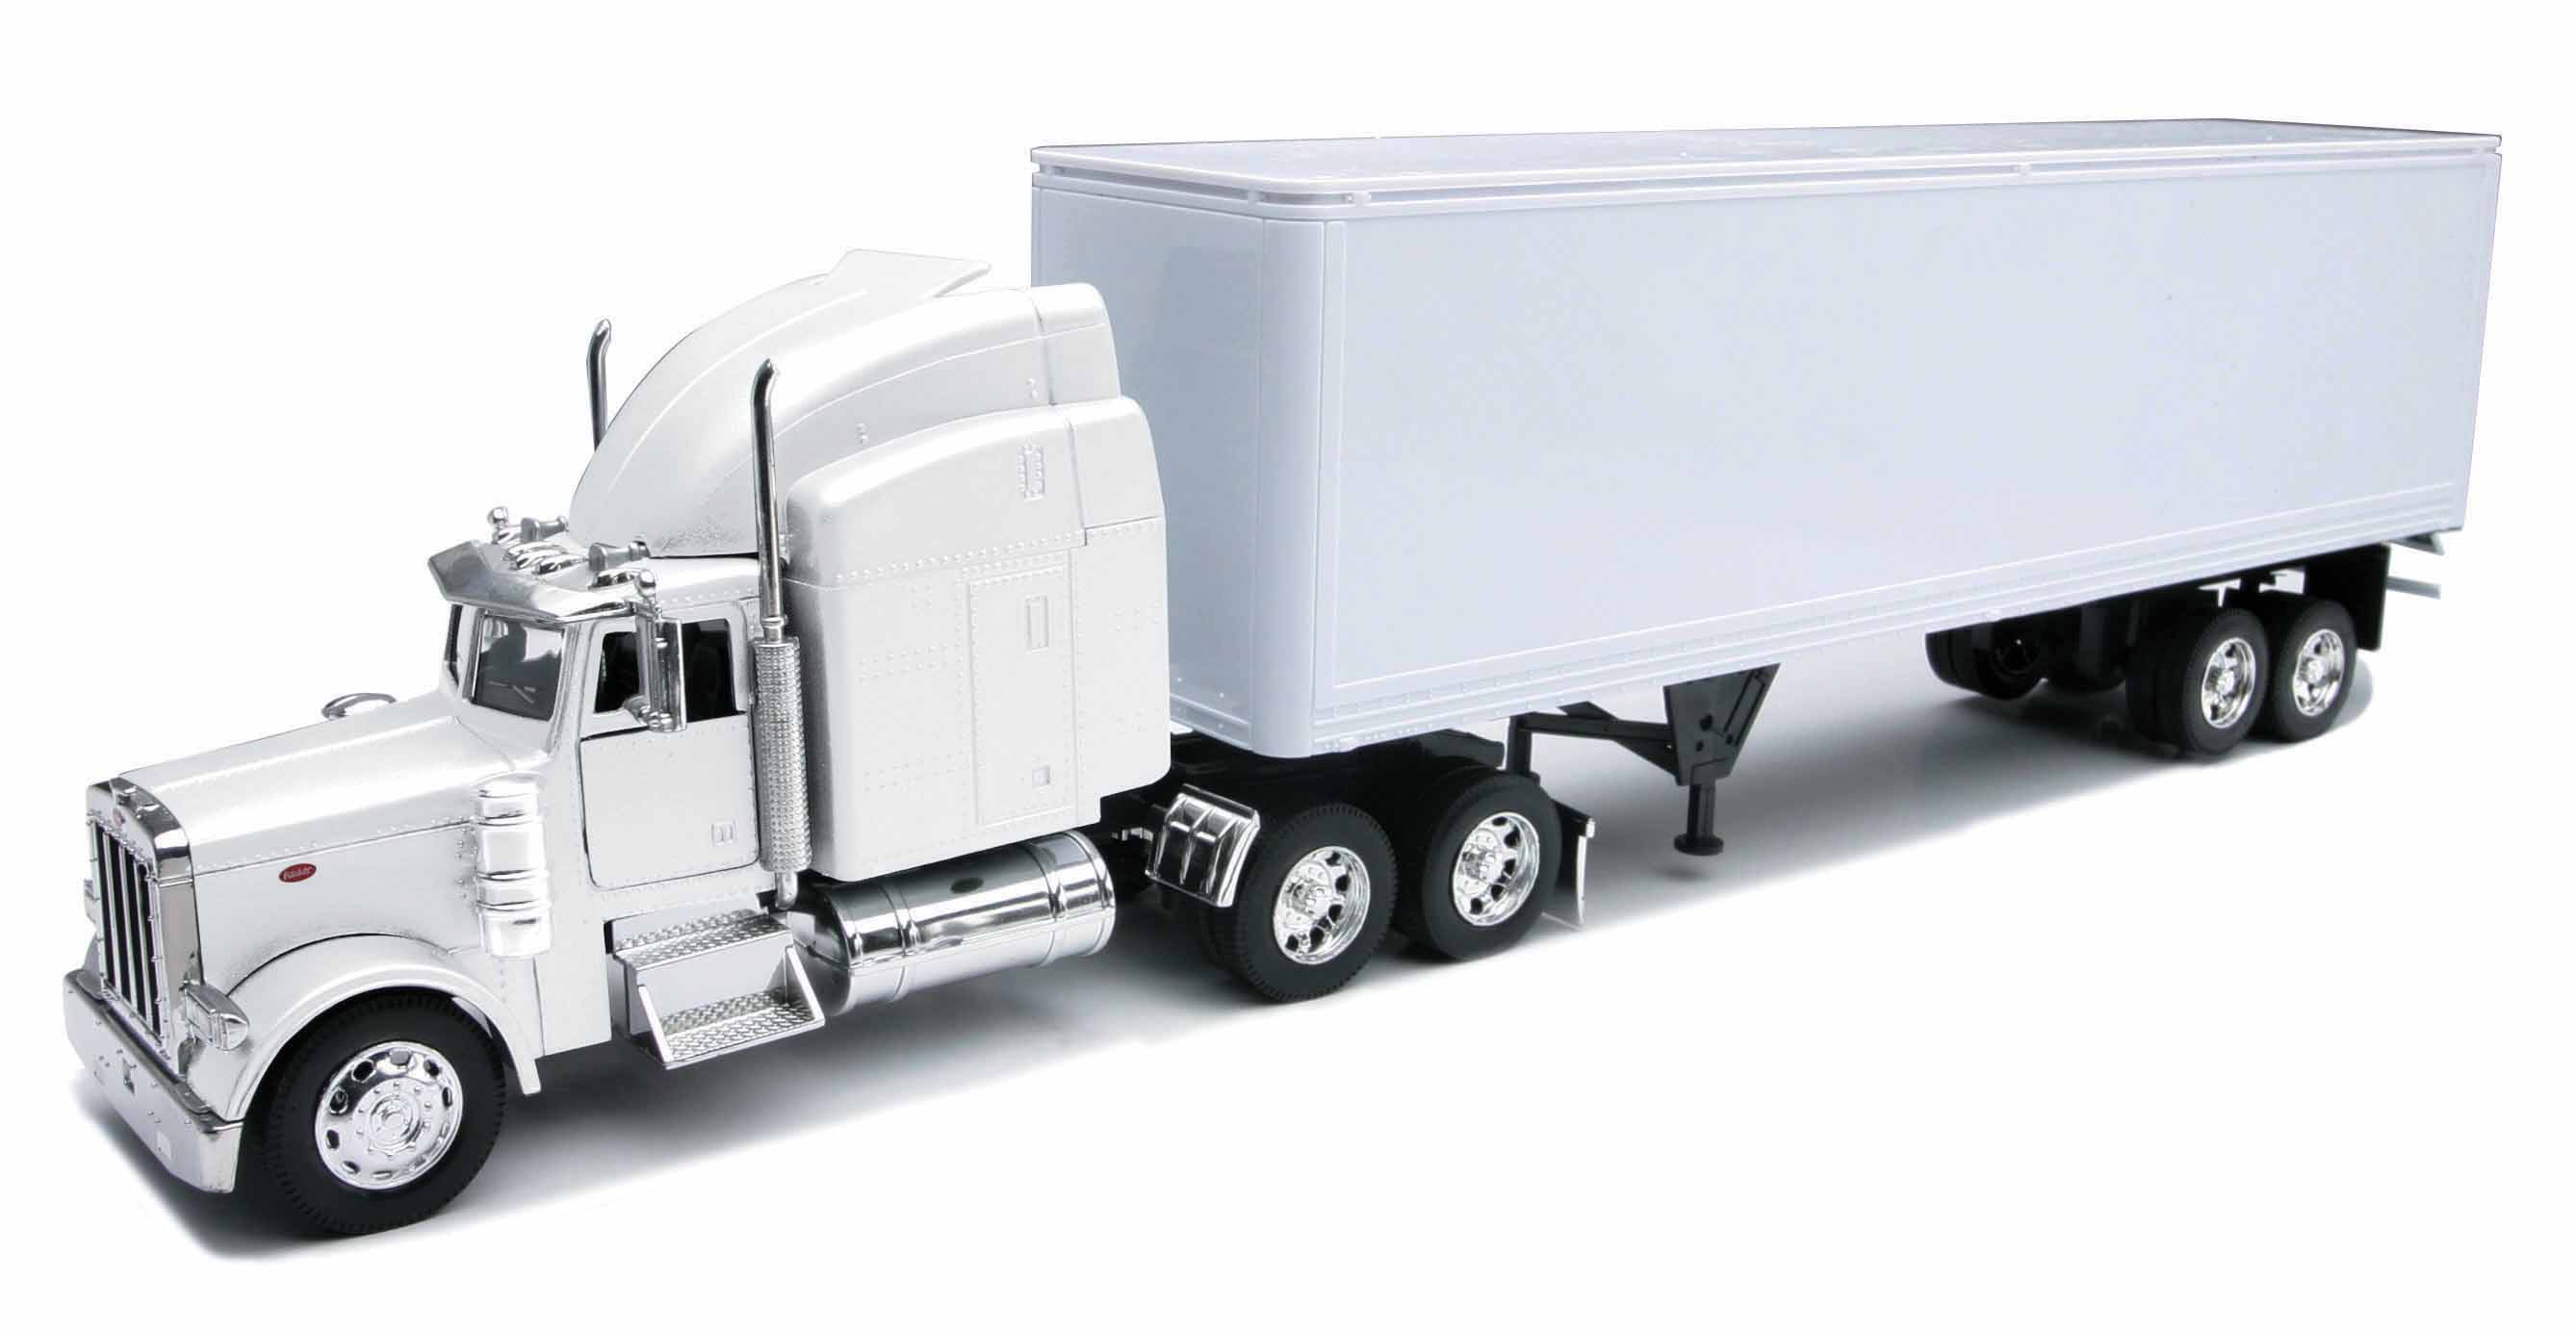 Peterbilt 379 With Dry Van - All-White Toy Truck